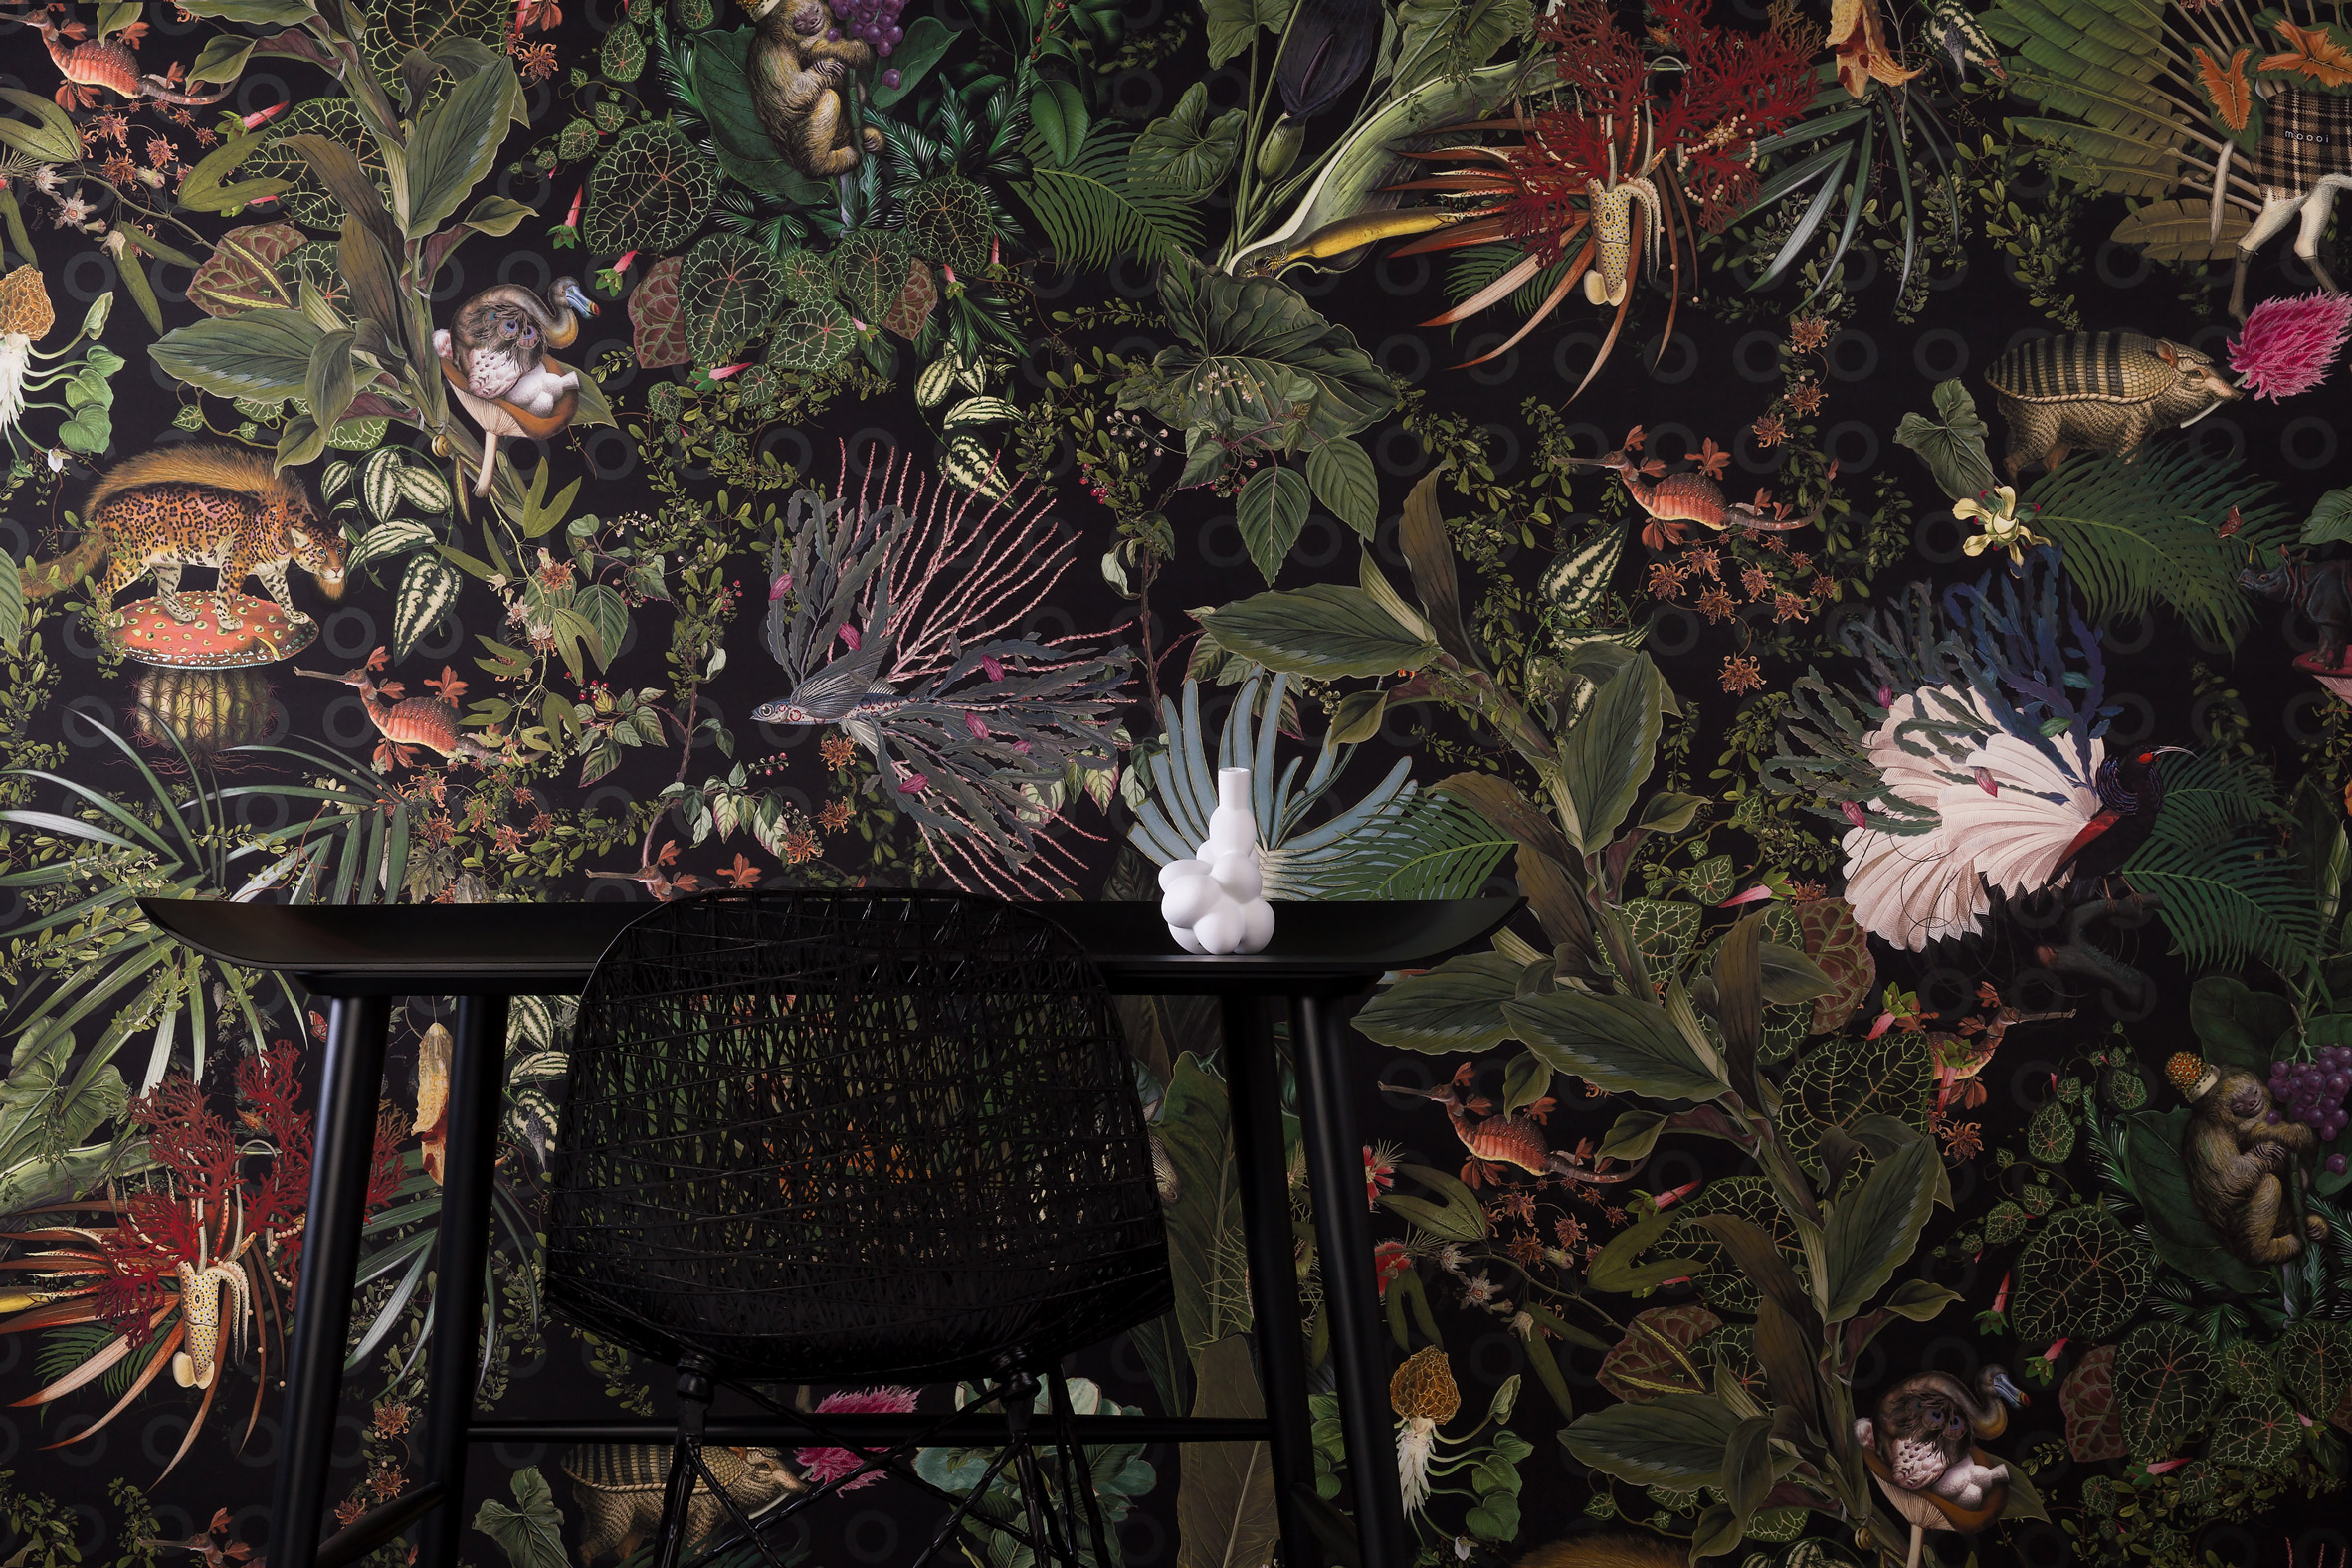 Interior designer and colour queen talk about the recent trend she's calling jungle chintz. The Extinct Animal wallpaper collection by Moooi for Arte features a Menagerie of Extinct Animals. It has an incredible depth and trompe l'oeil feel with it's hidden extinct animals